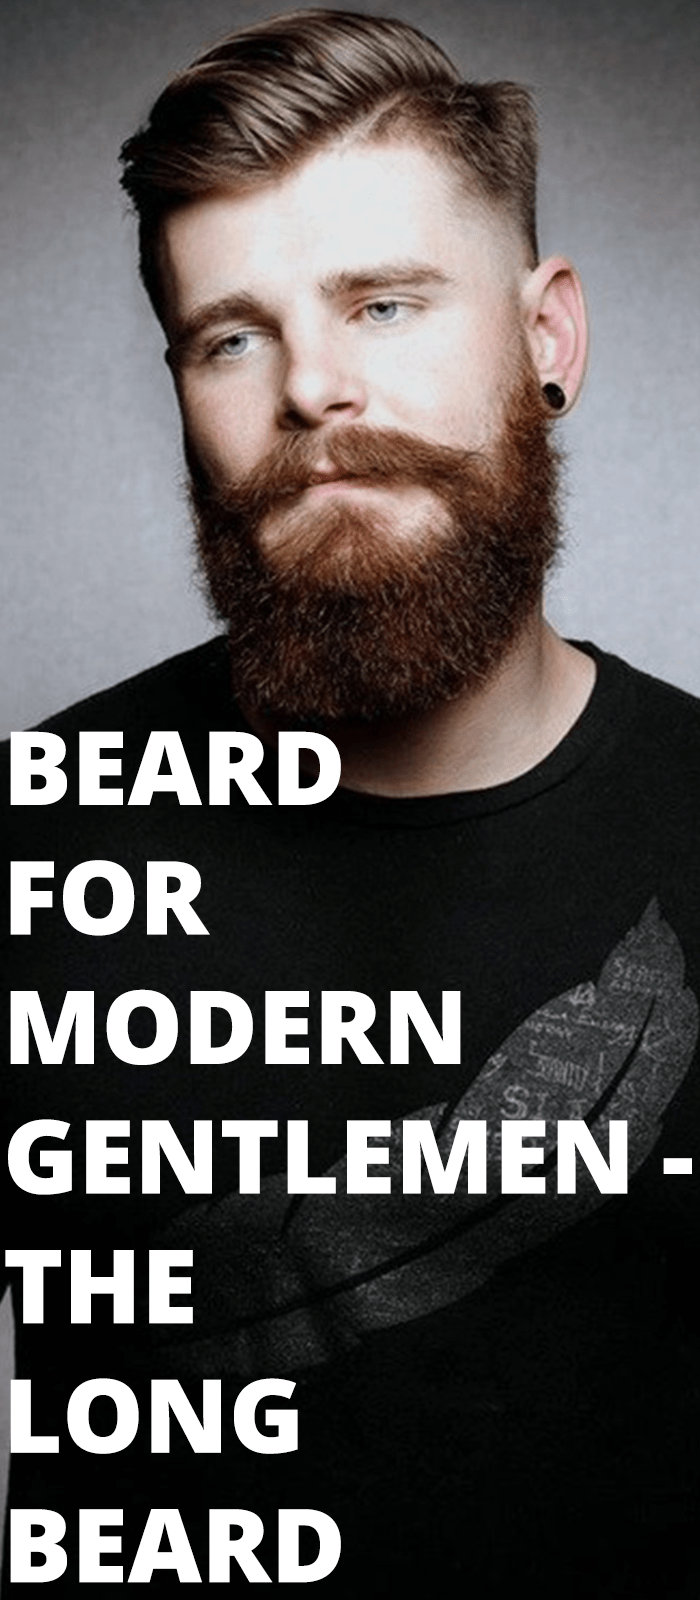 5 Beard Styles You Need To Know In 2018